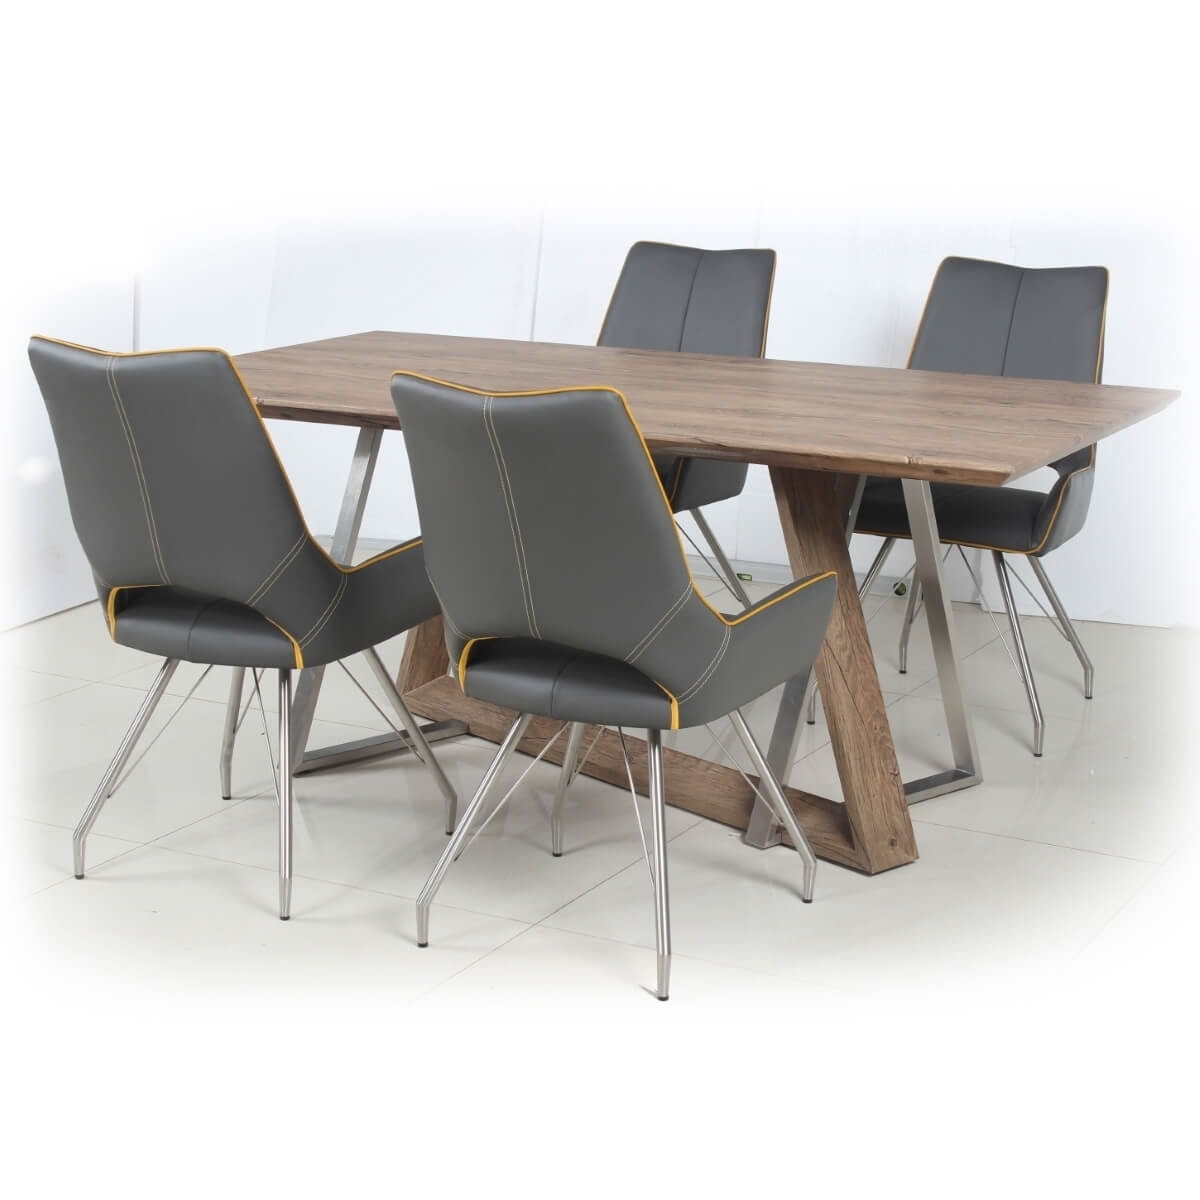 Grey Dining Chairs Regarding Latest Dining Set – Industrial Style Wood Dining Table And 4 Grey Dining (#7 of 20)